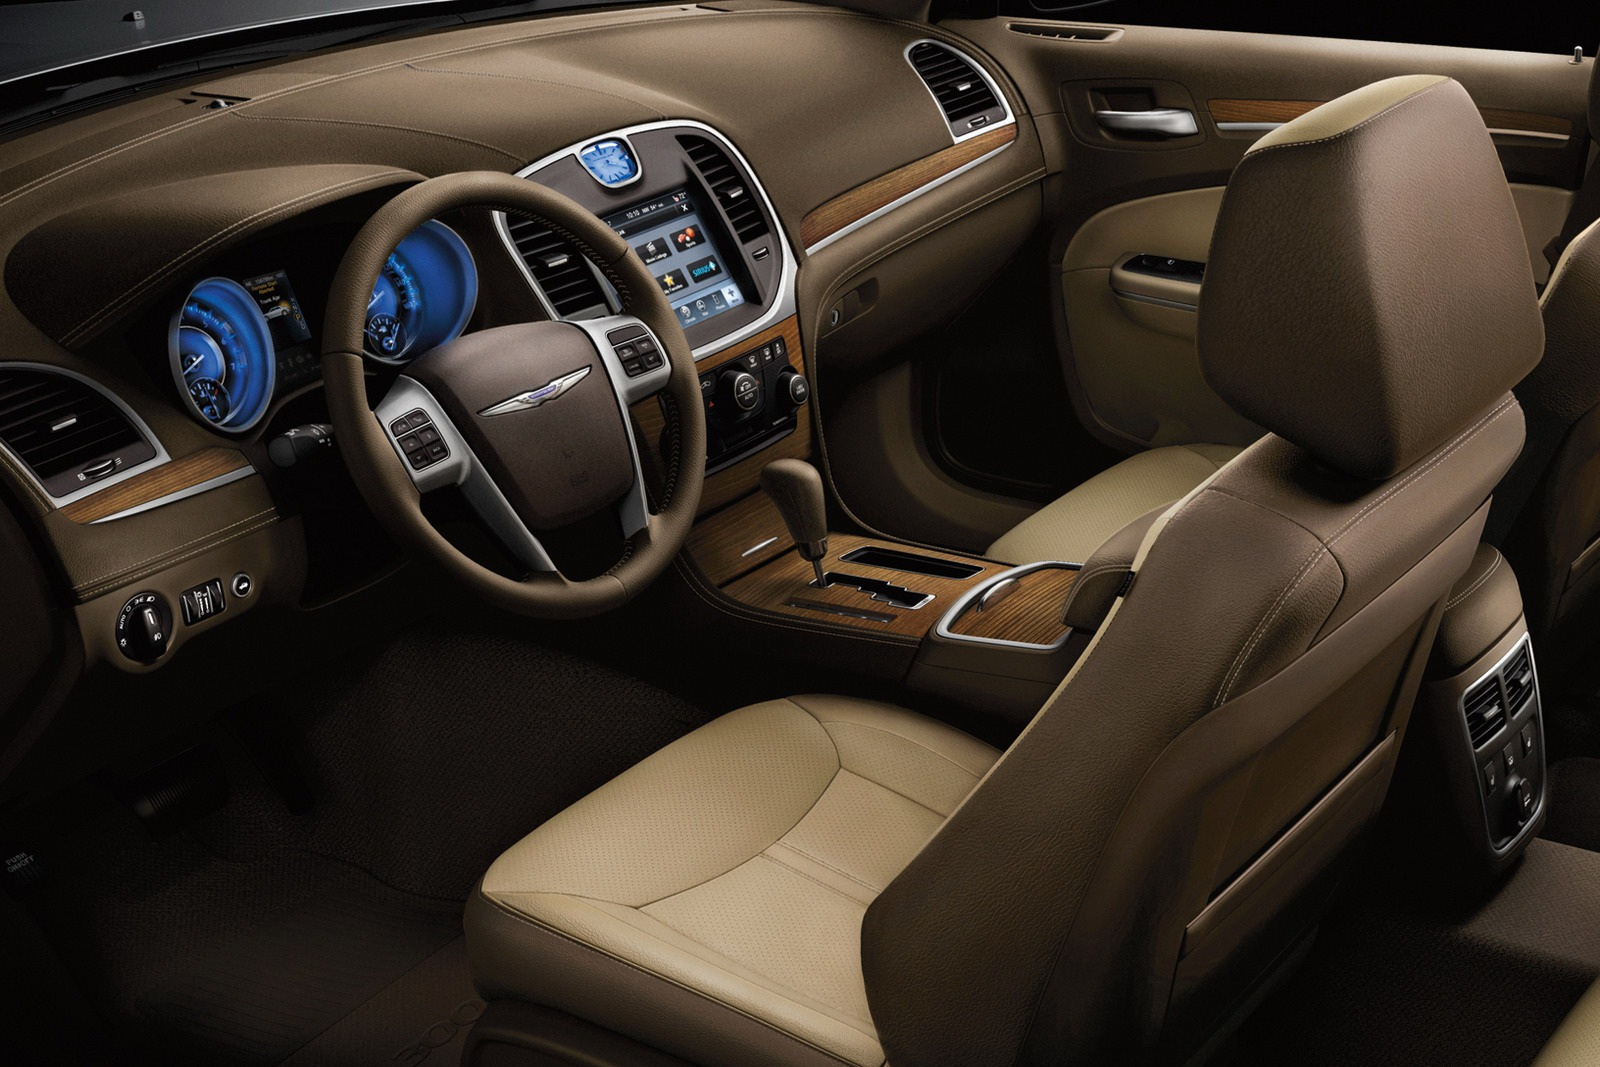 Image Gallery Luxury Car Interior